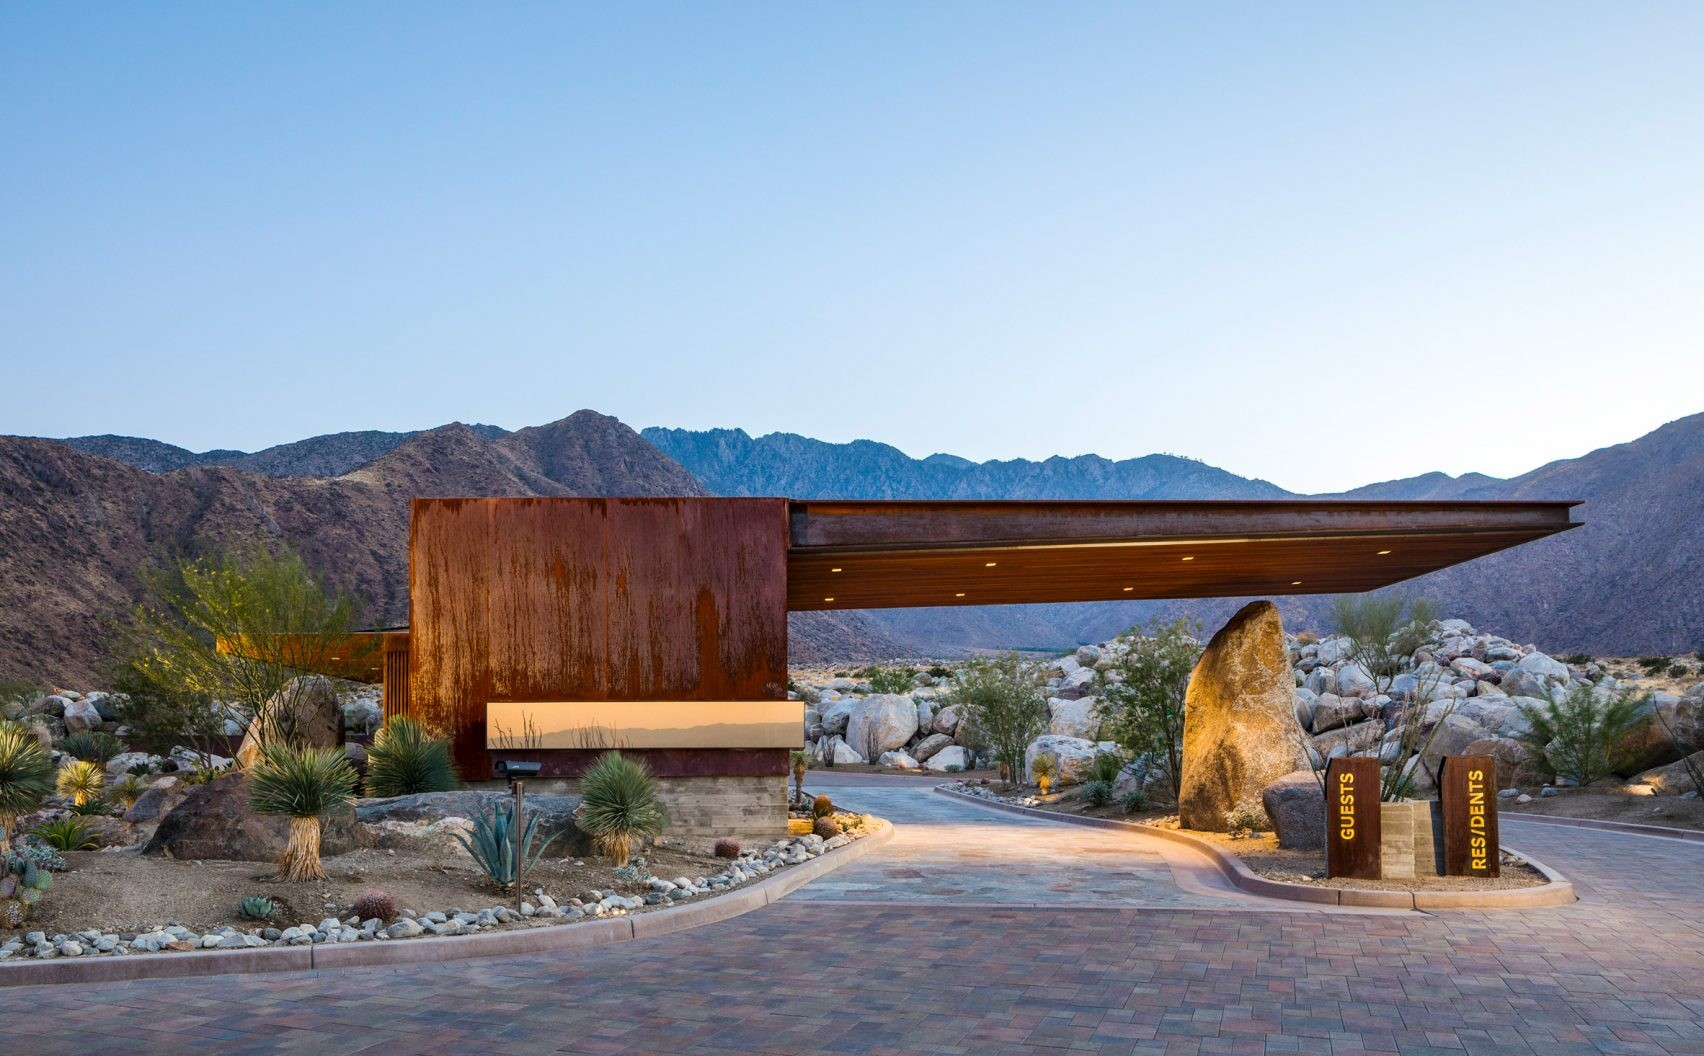 desert-palisades-guardhouse-studio-ar-d-palm-springs-california-usa_dezeen_2364_col_19-1704x1136